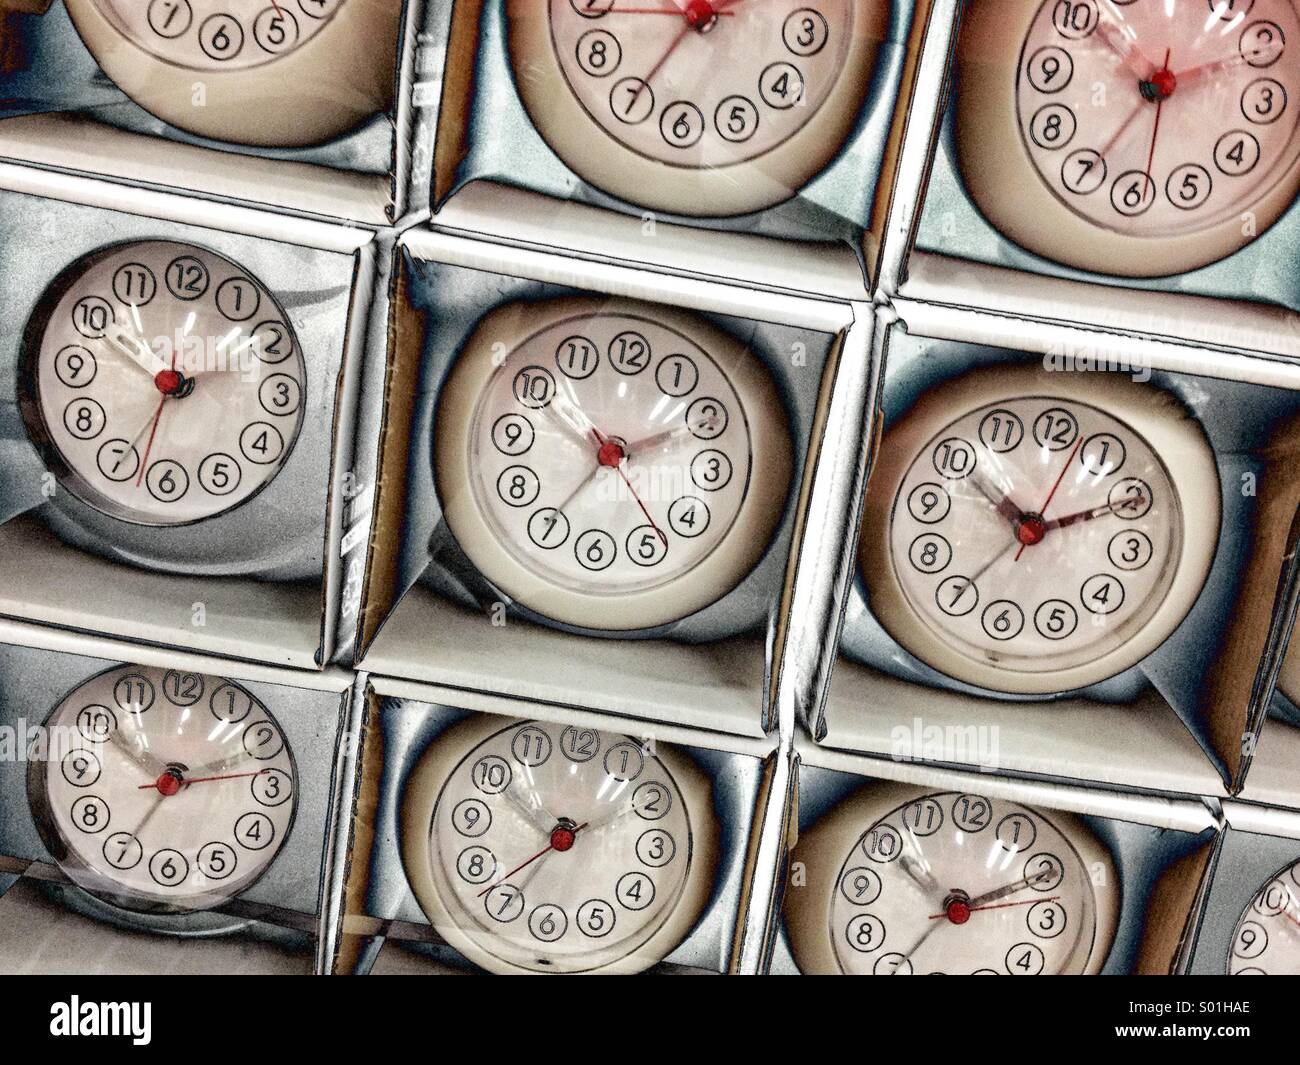 Clocks - Stock Image